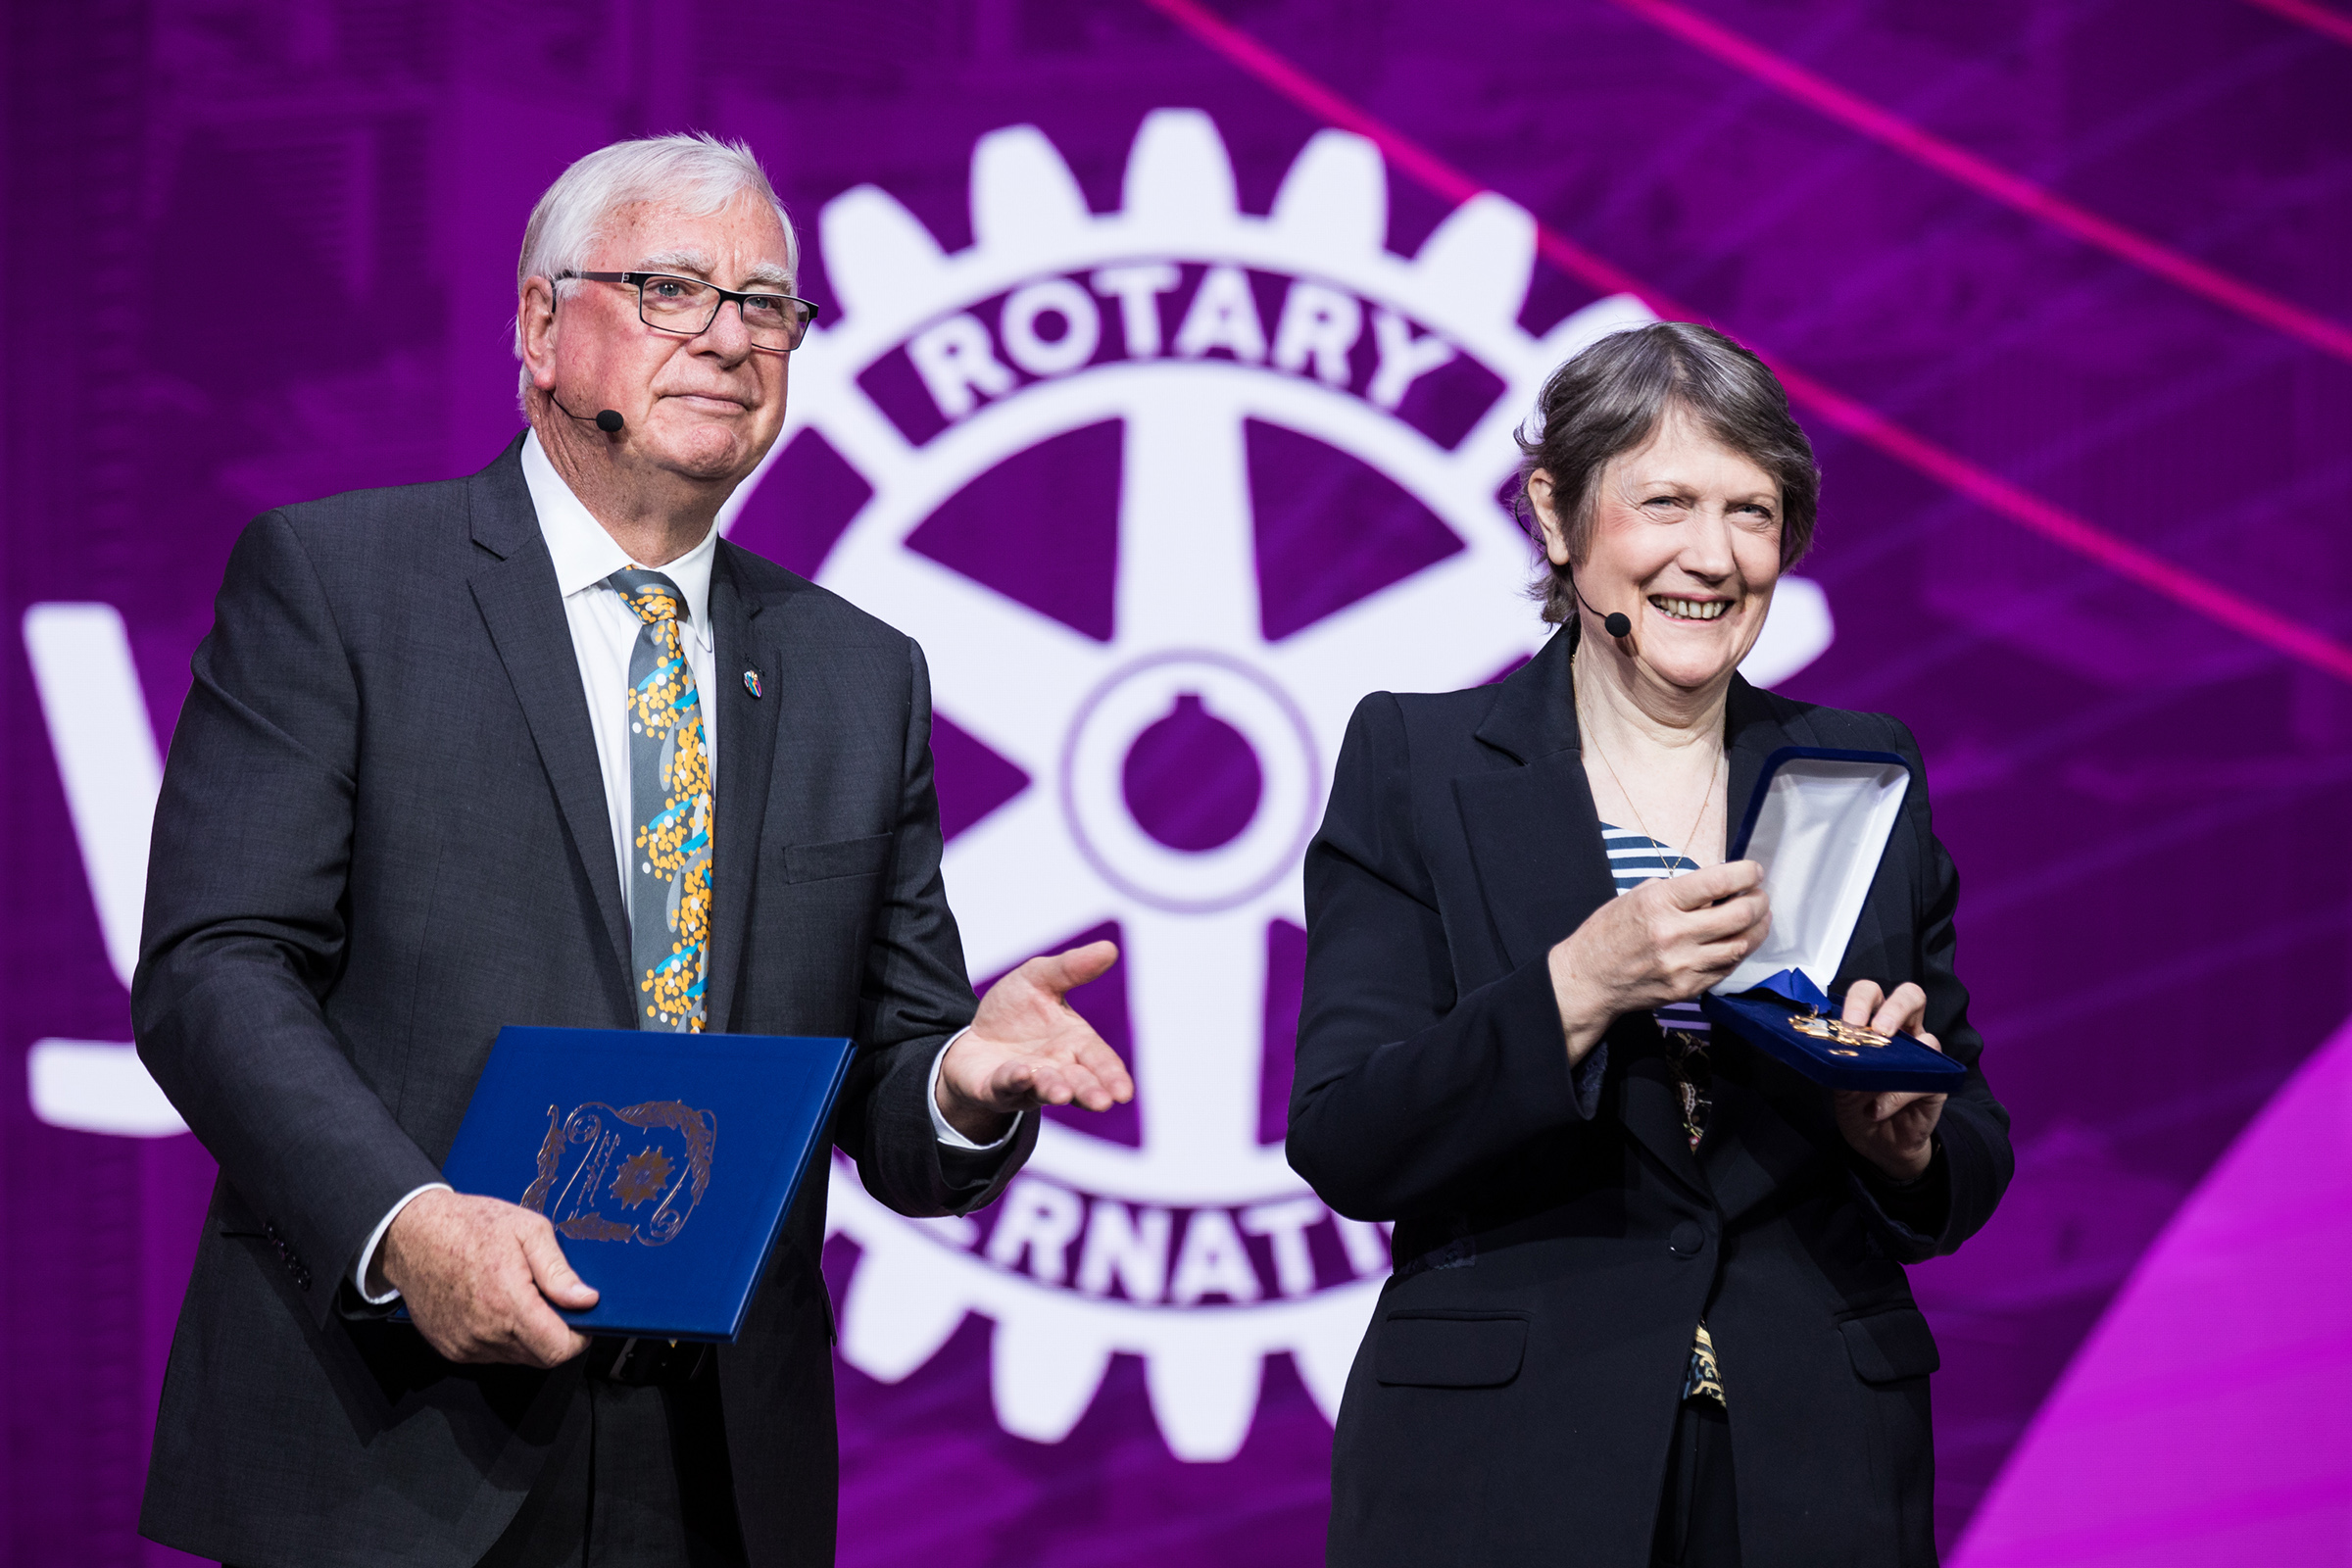 RI President Ian HS Riseley Presents Helen Clark The Former Prime Minister Of New Zealand With A Rotary International Award Honor